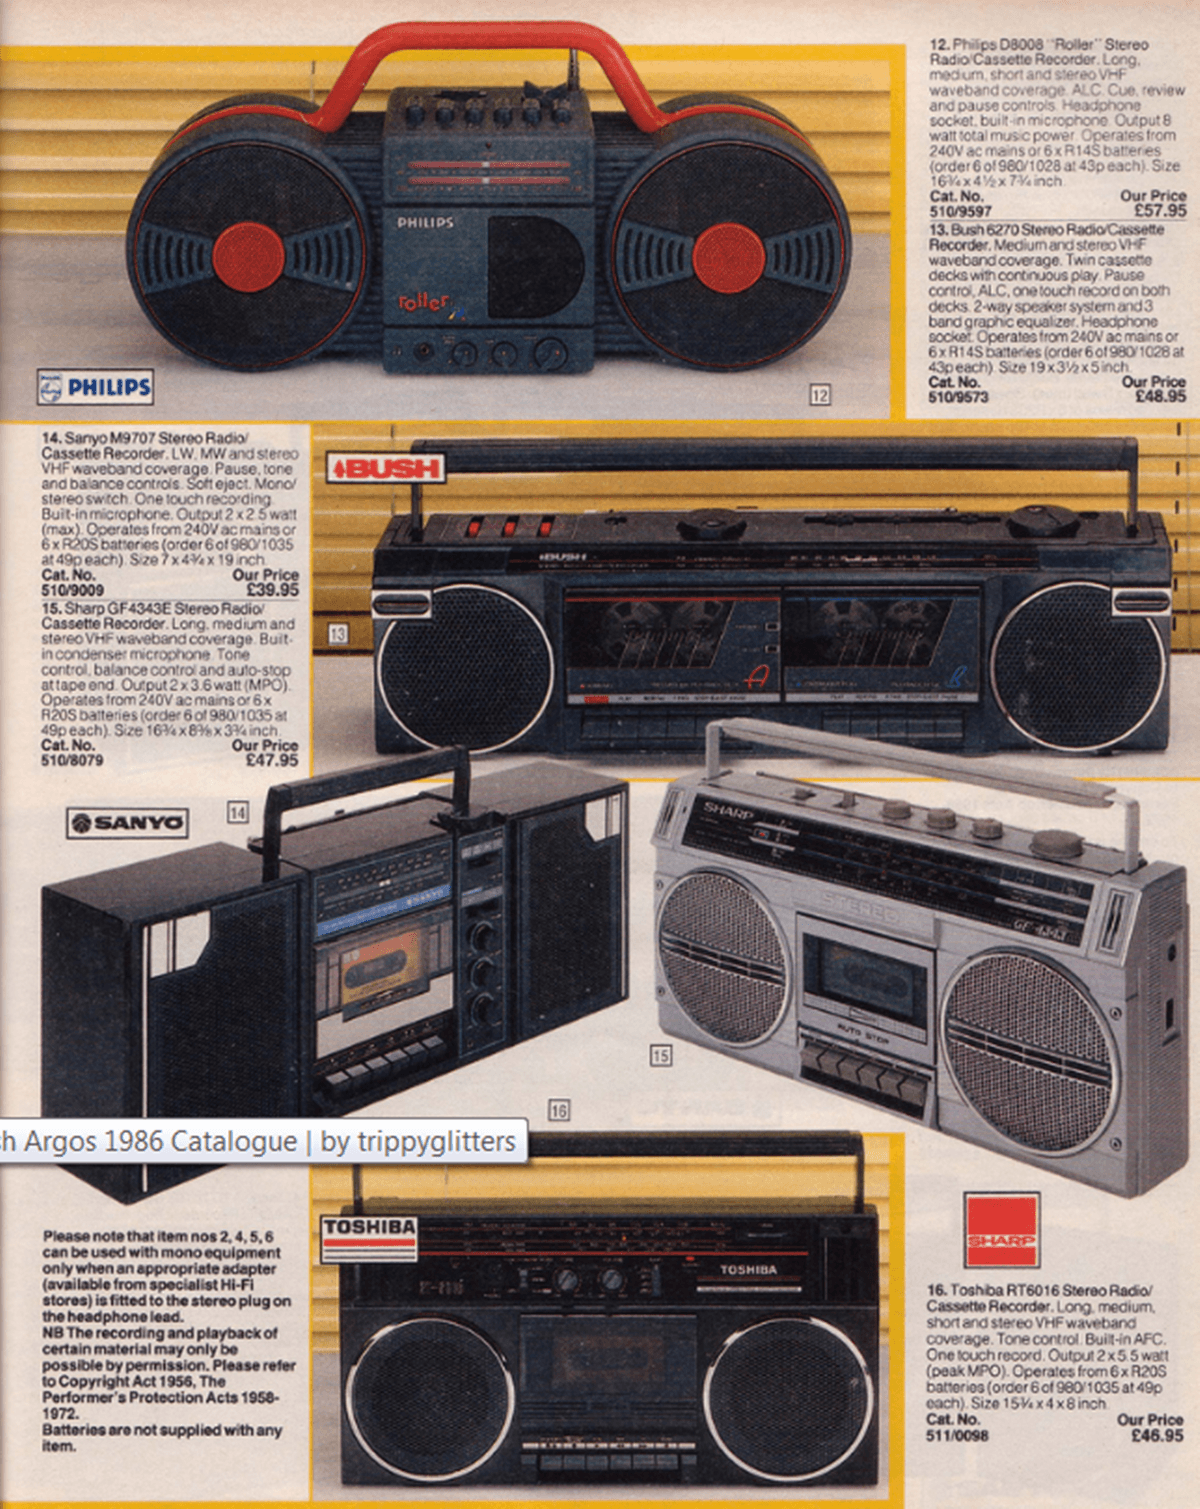 3 1 Take A Look Inside An Argos Catalogue From 1986!